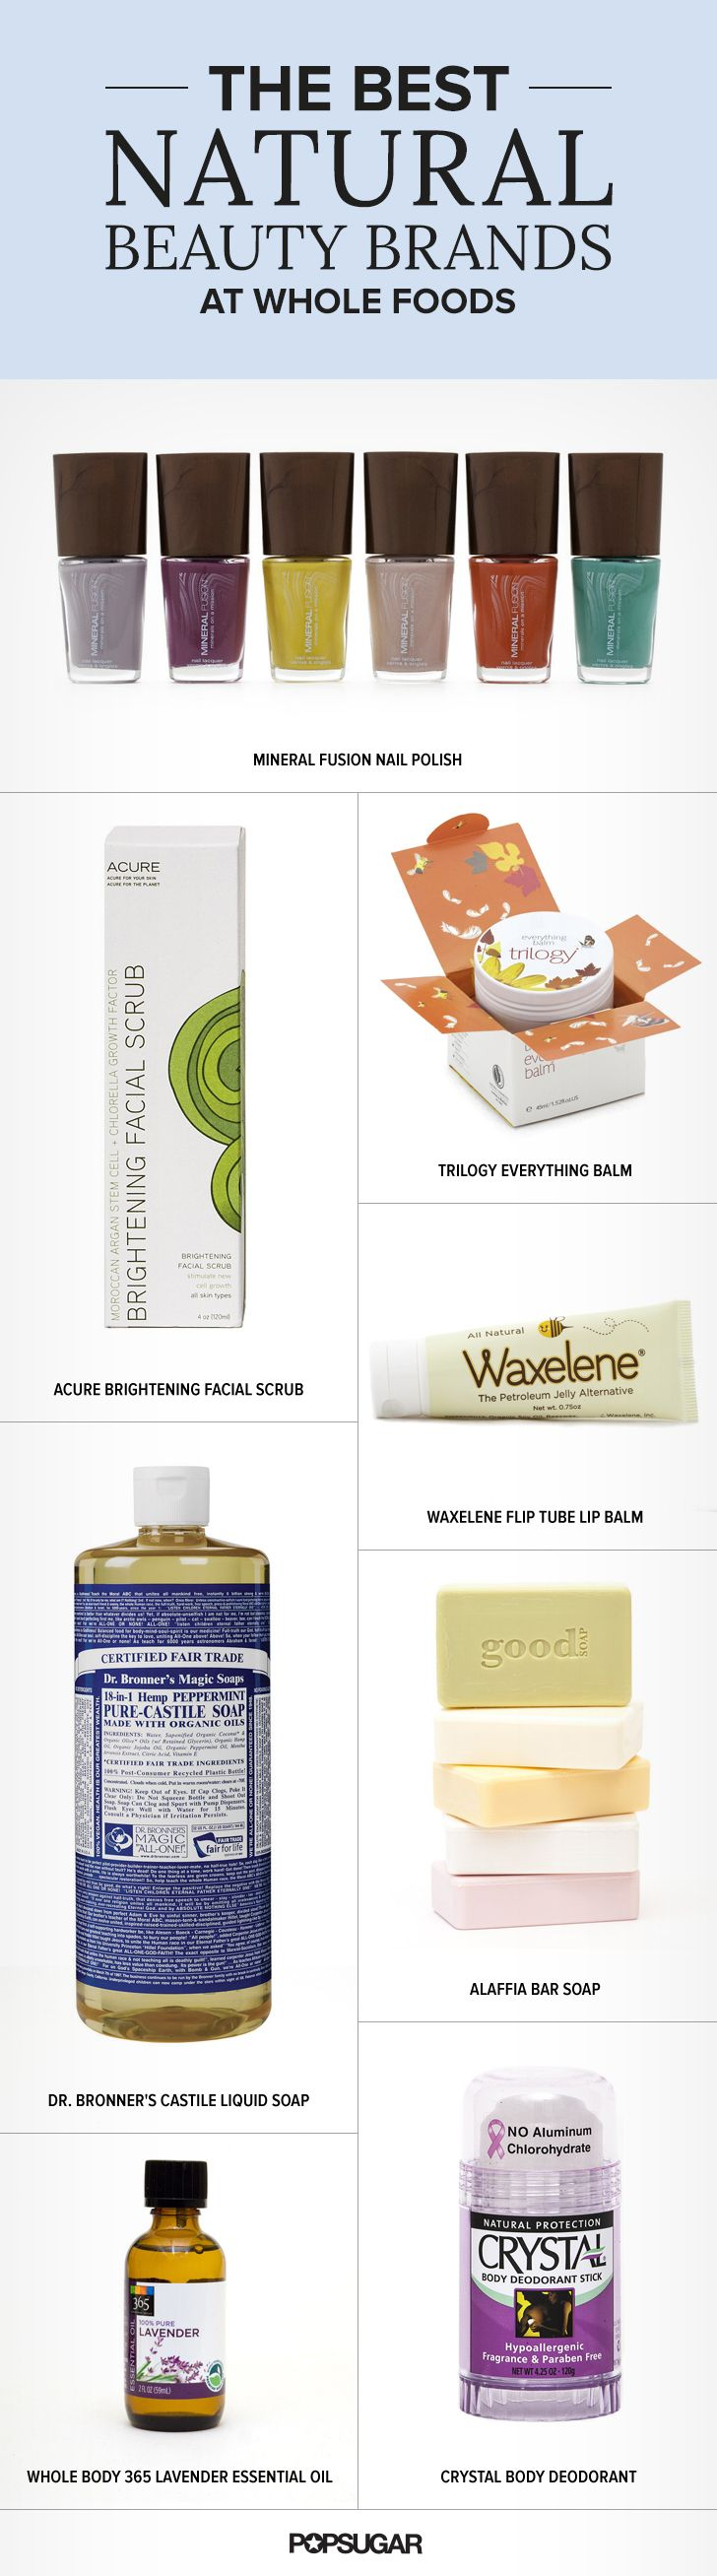 These awesome and natural beauty buys are available at your local Whole Foods!